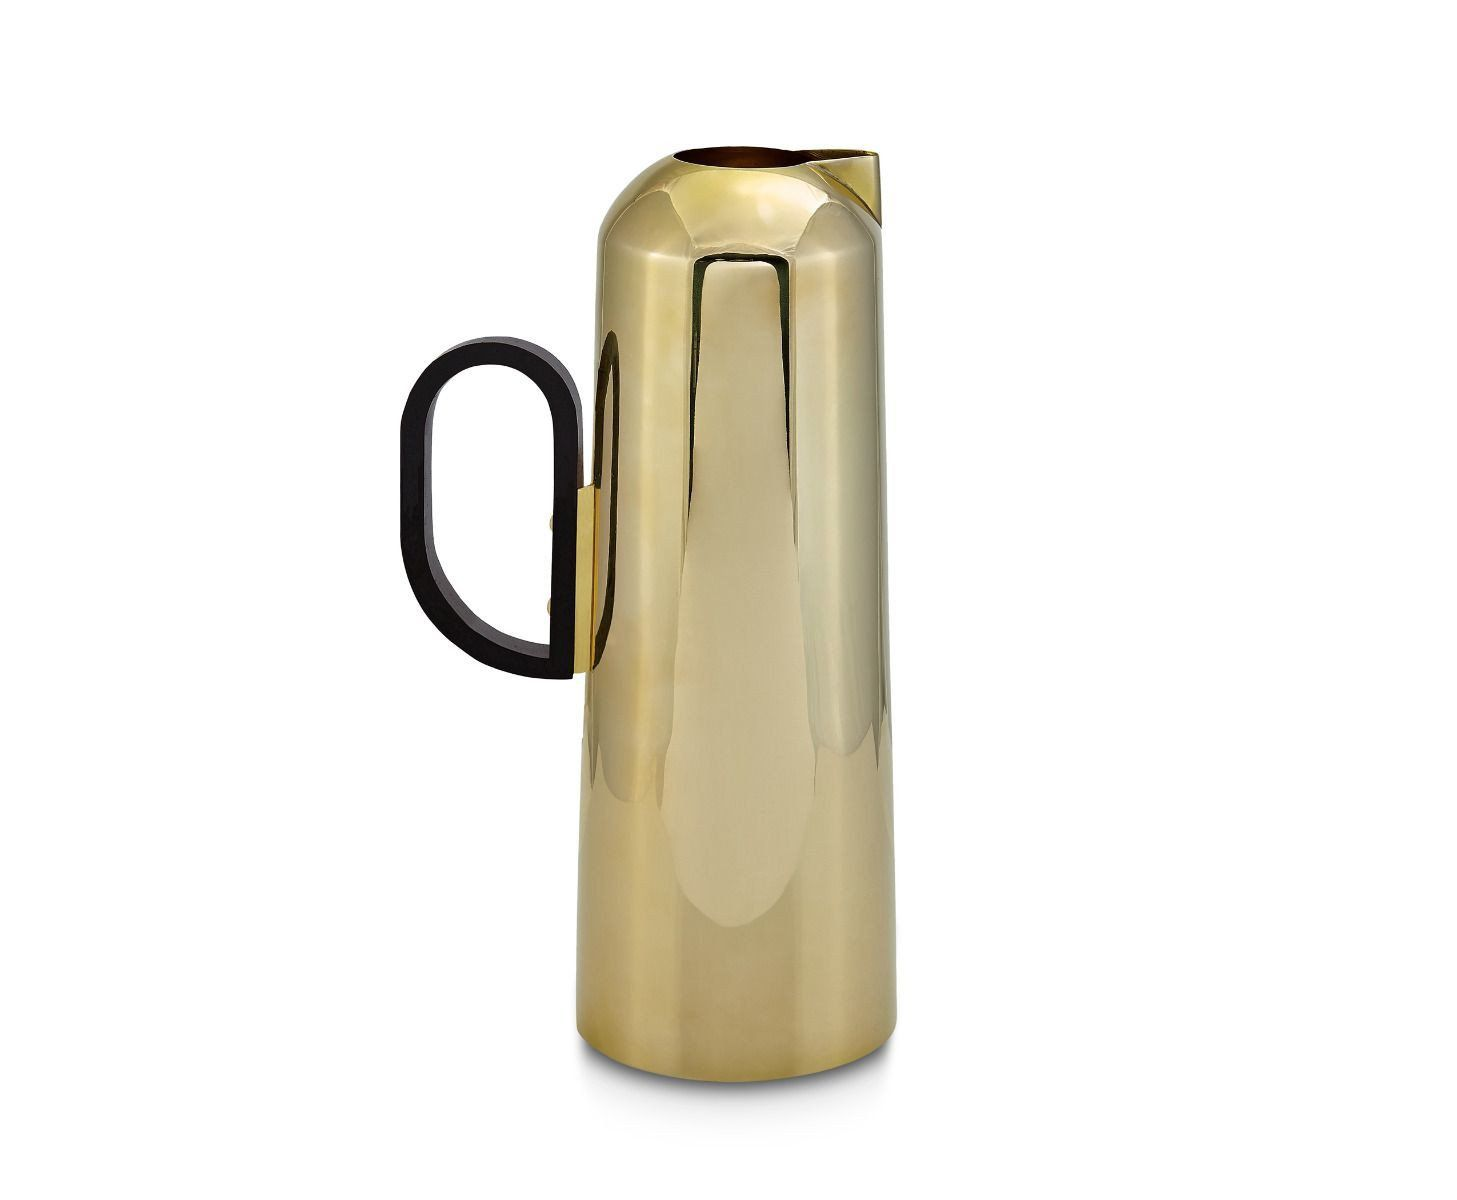 A brass jug with a black handle.